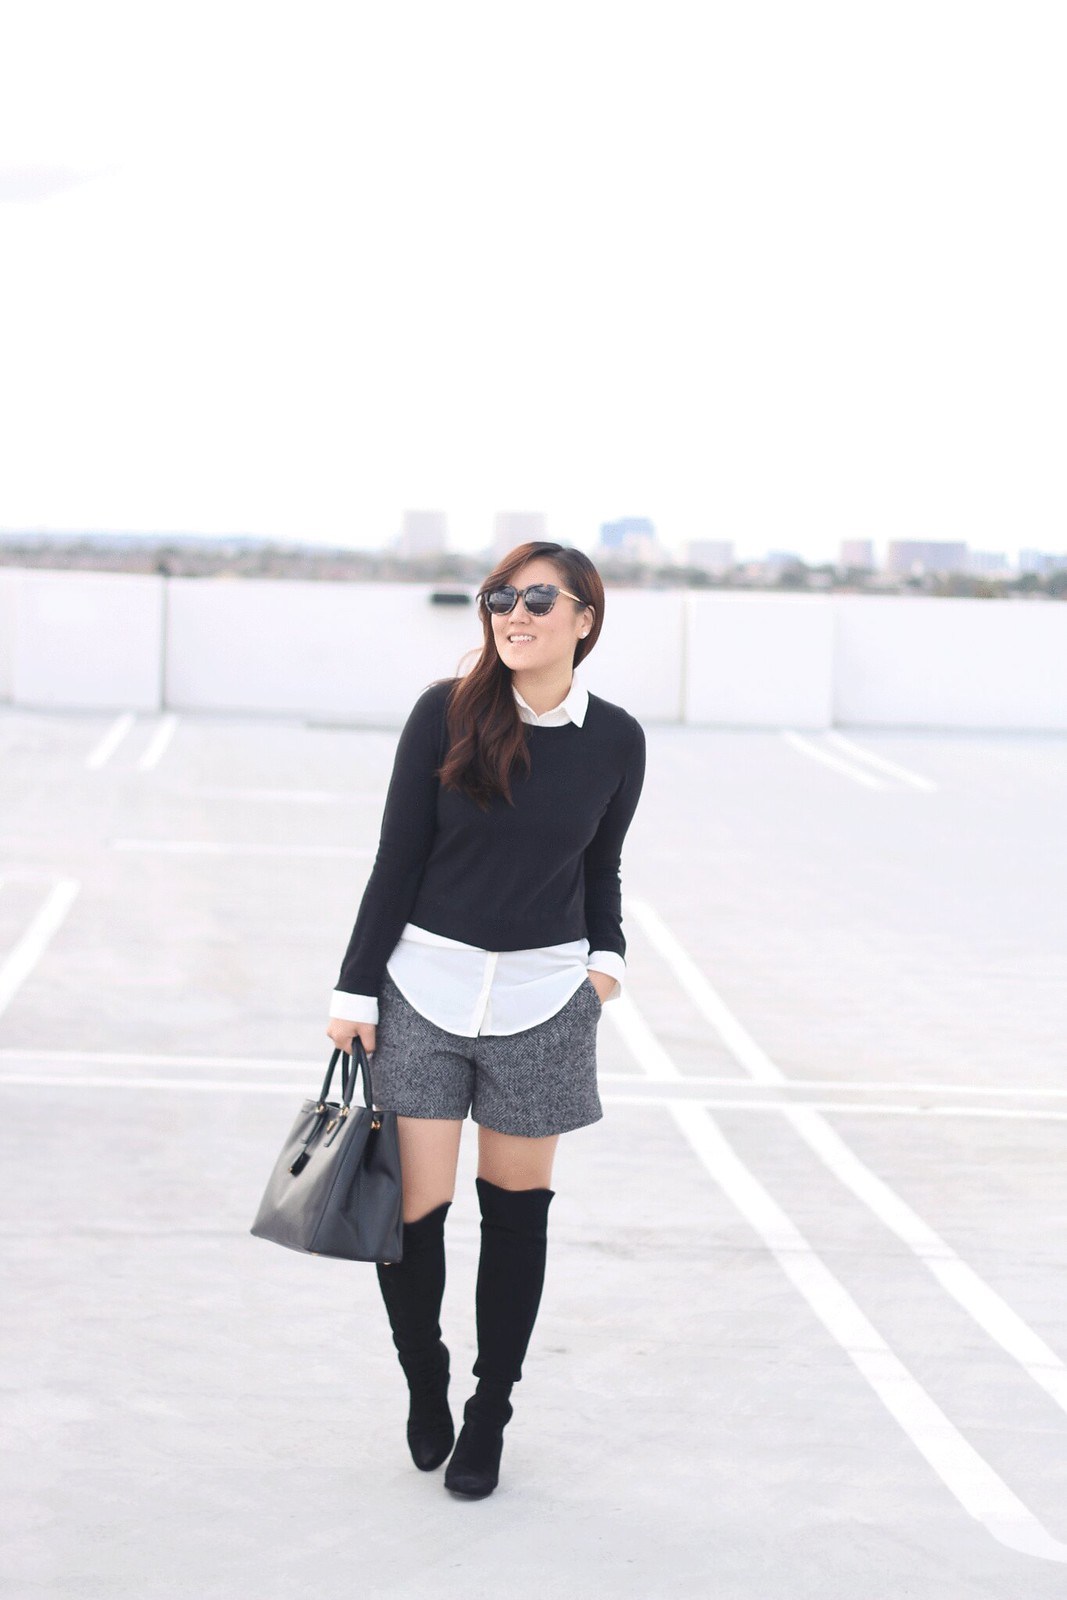 simplyxclassic, style, mom blogger, fashion, orange county, lifestyle, blog, loft, gap, over the knee boots, winter shorts, fall outfit, winter outfit, layered look, black and white, gentle monster